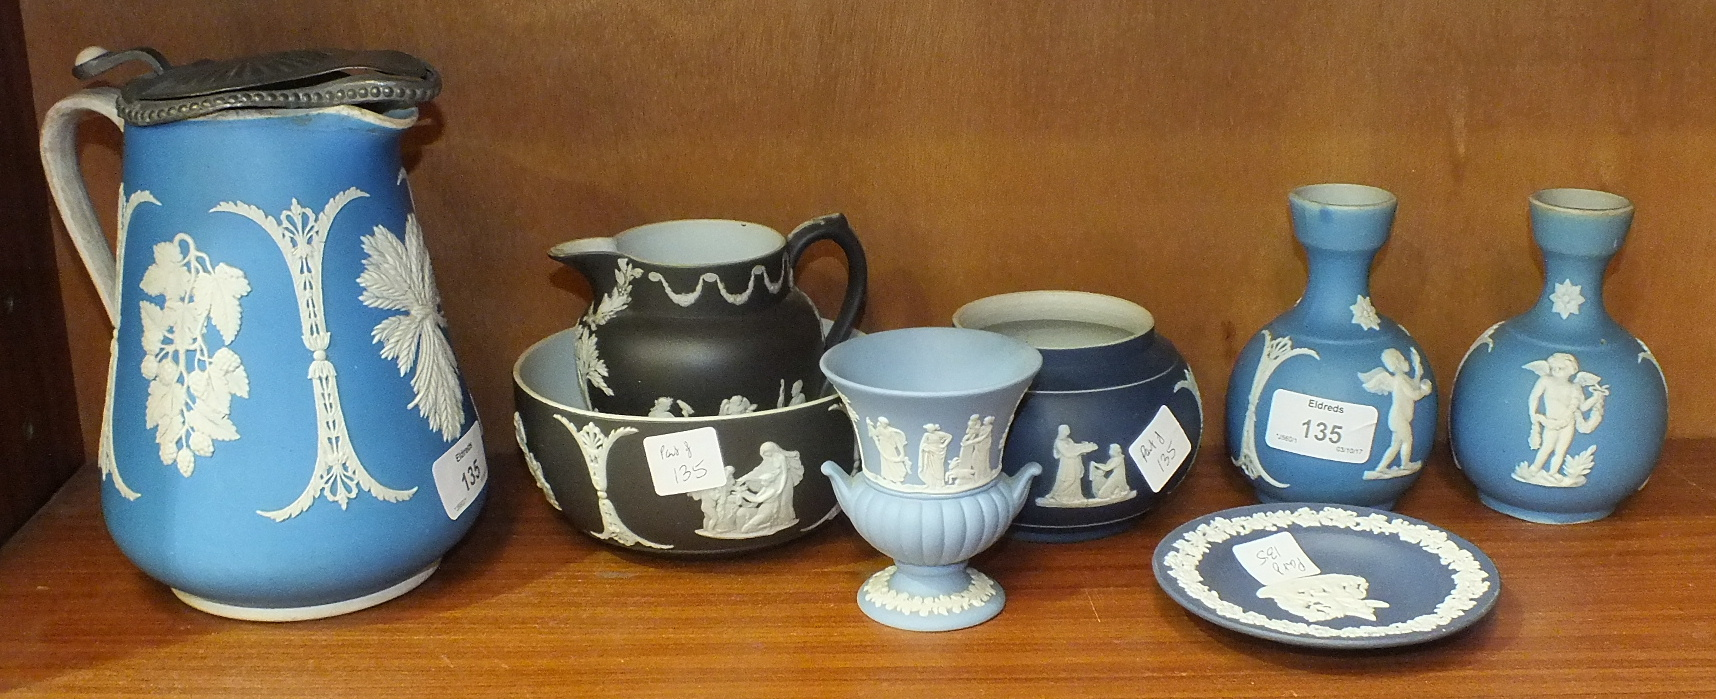 Lot 135 - An unmarked blue and white jasperware pewter-lidded jug decorated with berries, leaves and corn,